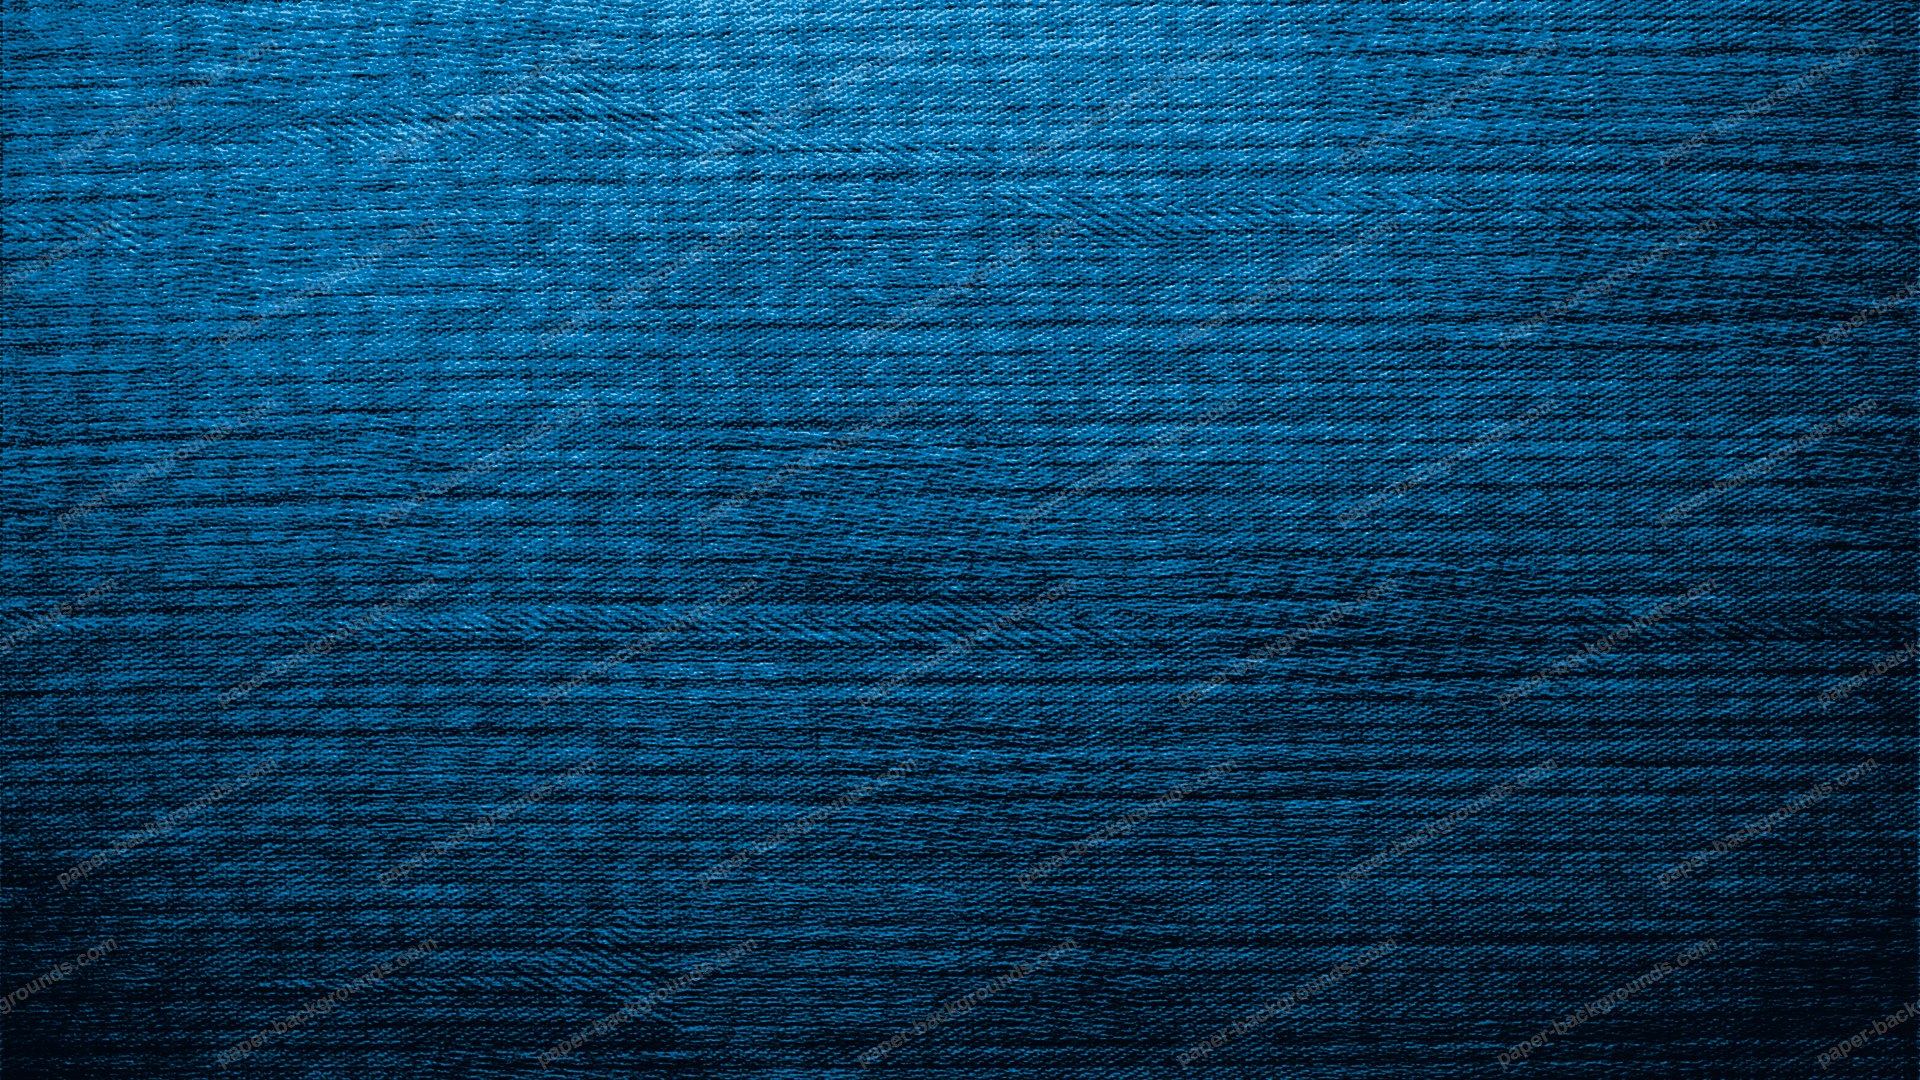 Dark Blue Grunge Background HD 1920 x 1080p